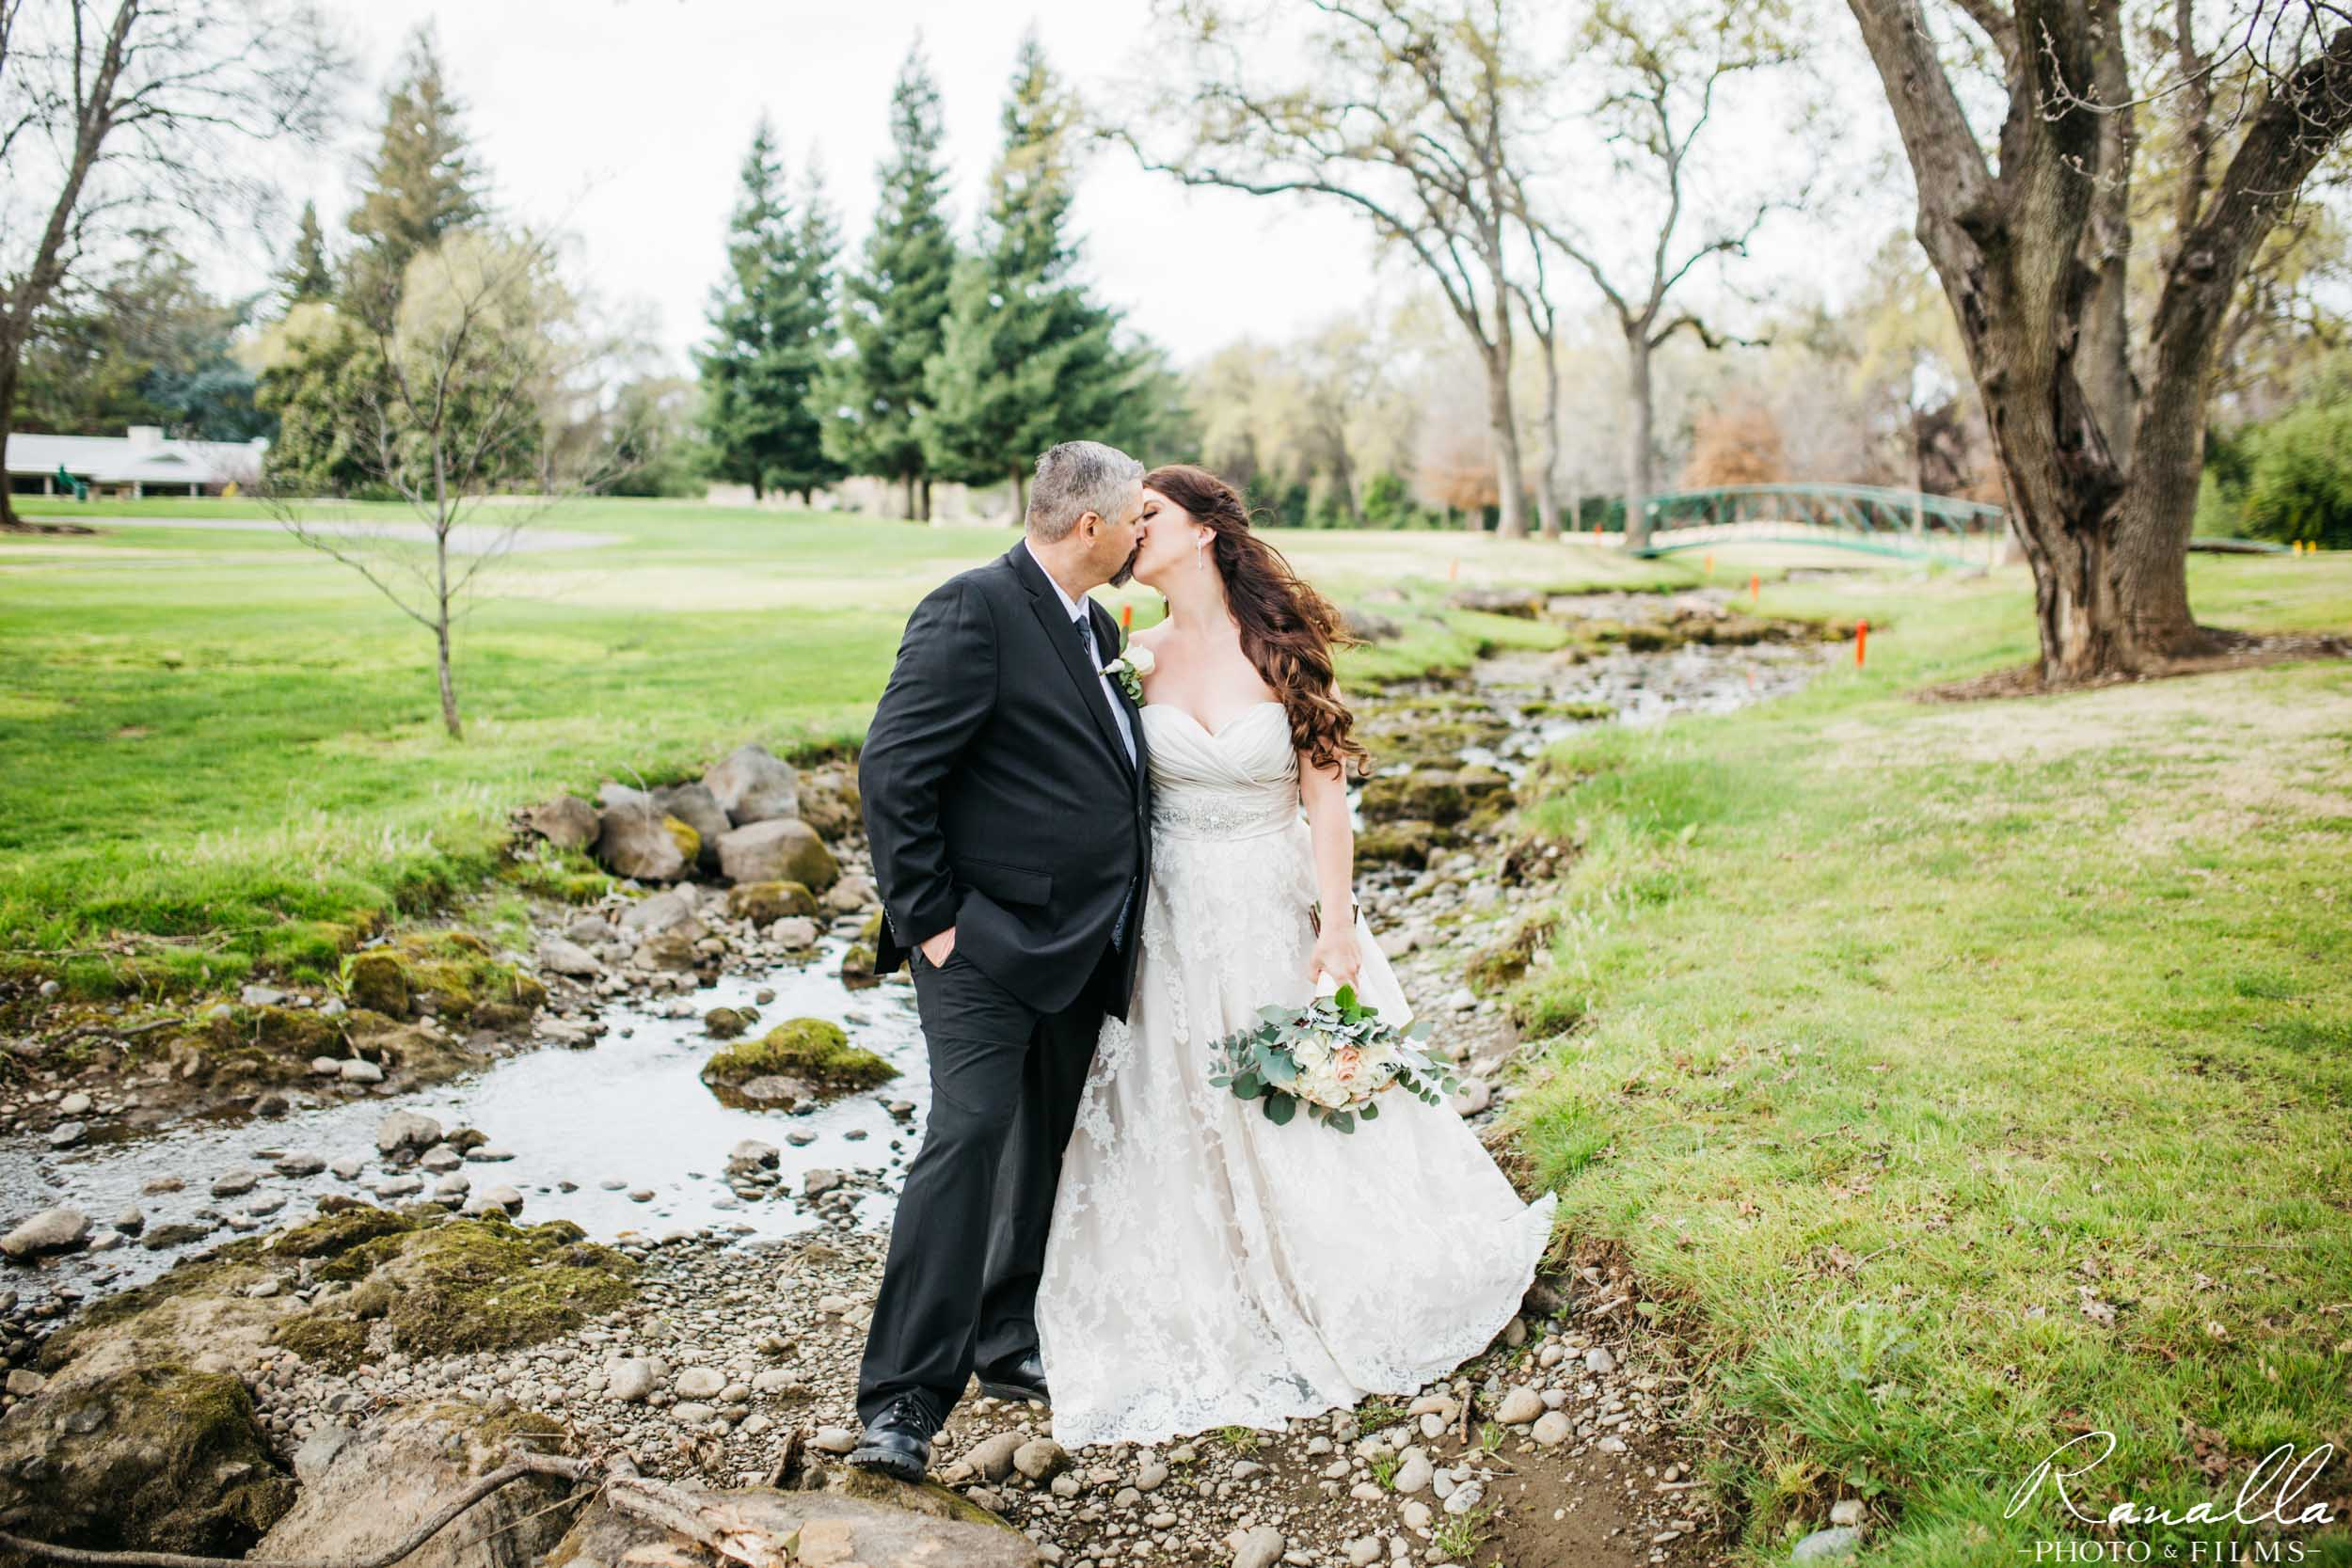 Chico Wedding Photography- Bride and Groom- Golf Course Wedding Venue- Butte Creek Country Club- Simply Elegant Bridal- Ranalla Photo & Films